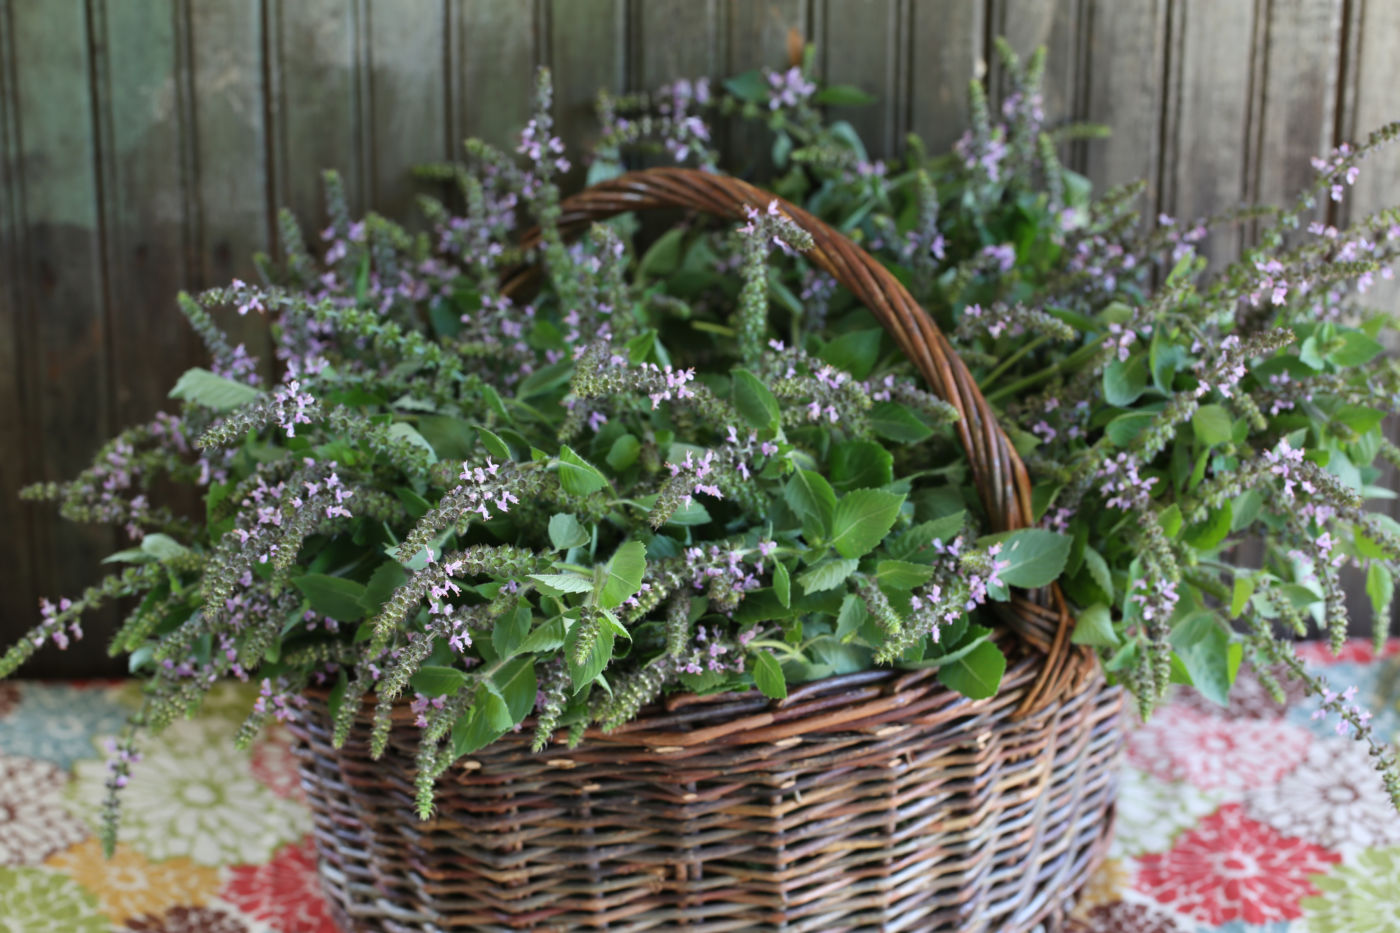 Holy Basil or Tulsi (Ocimum tenuiflorum)